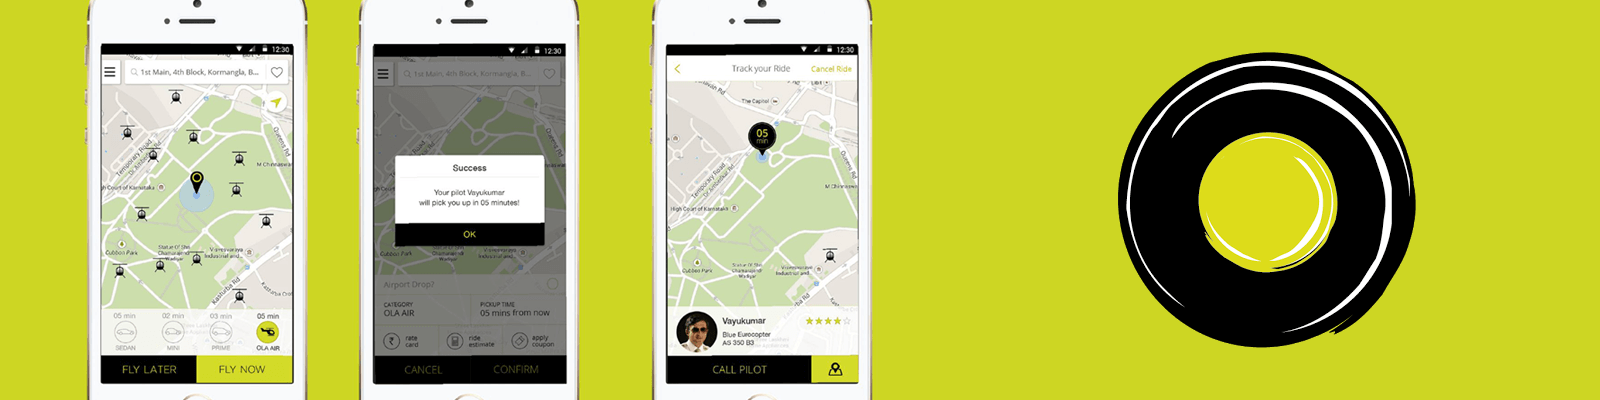 ola app development cost